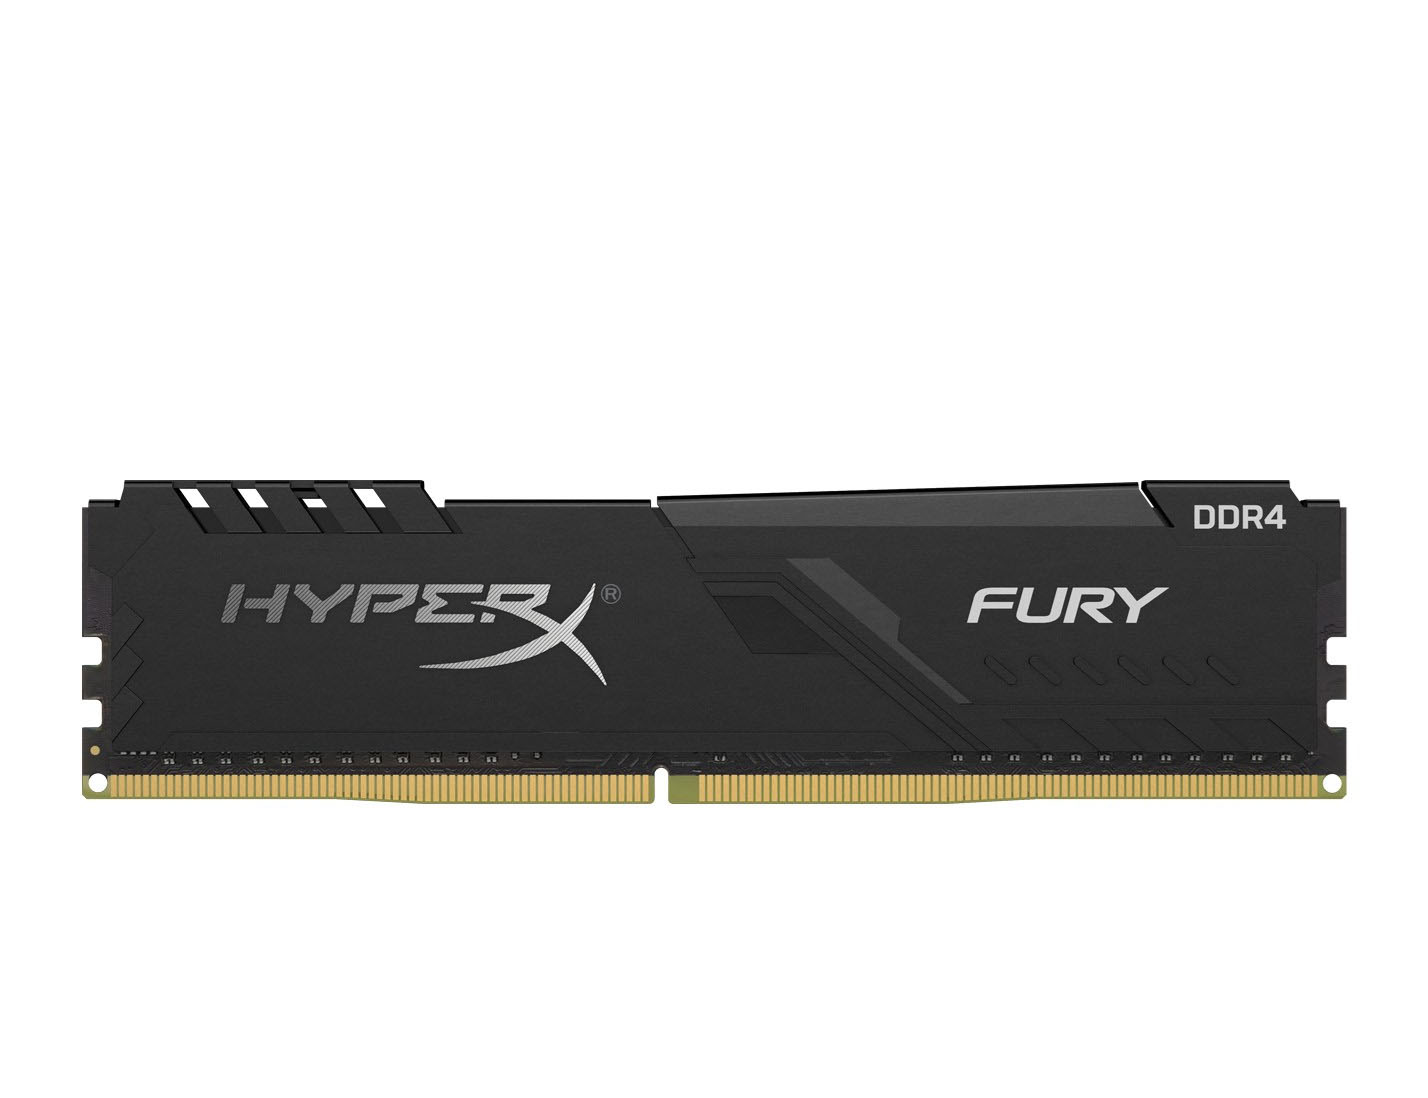 Kingston 8GB 2666Mhz DDR4 CL16 DIMM Fury HyperX Black